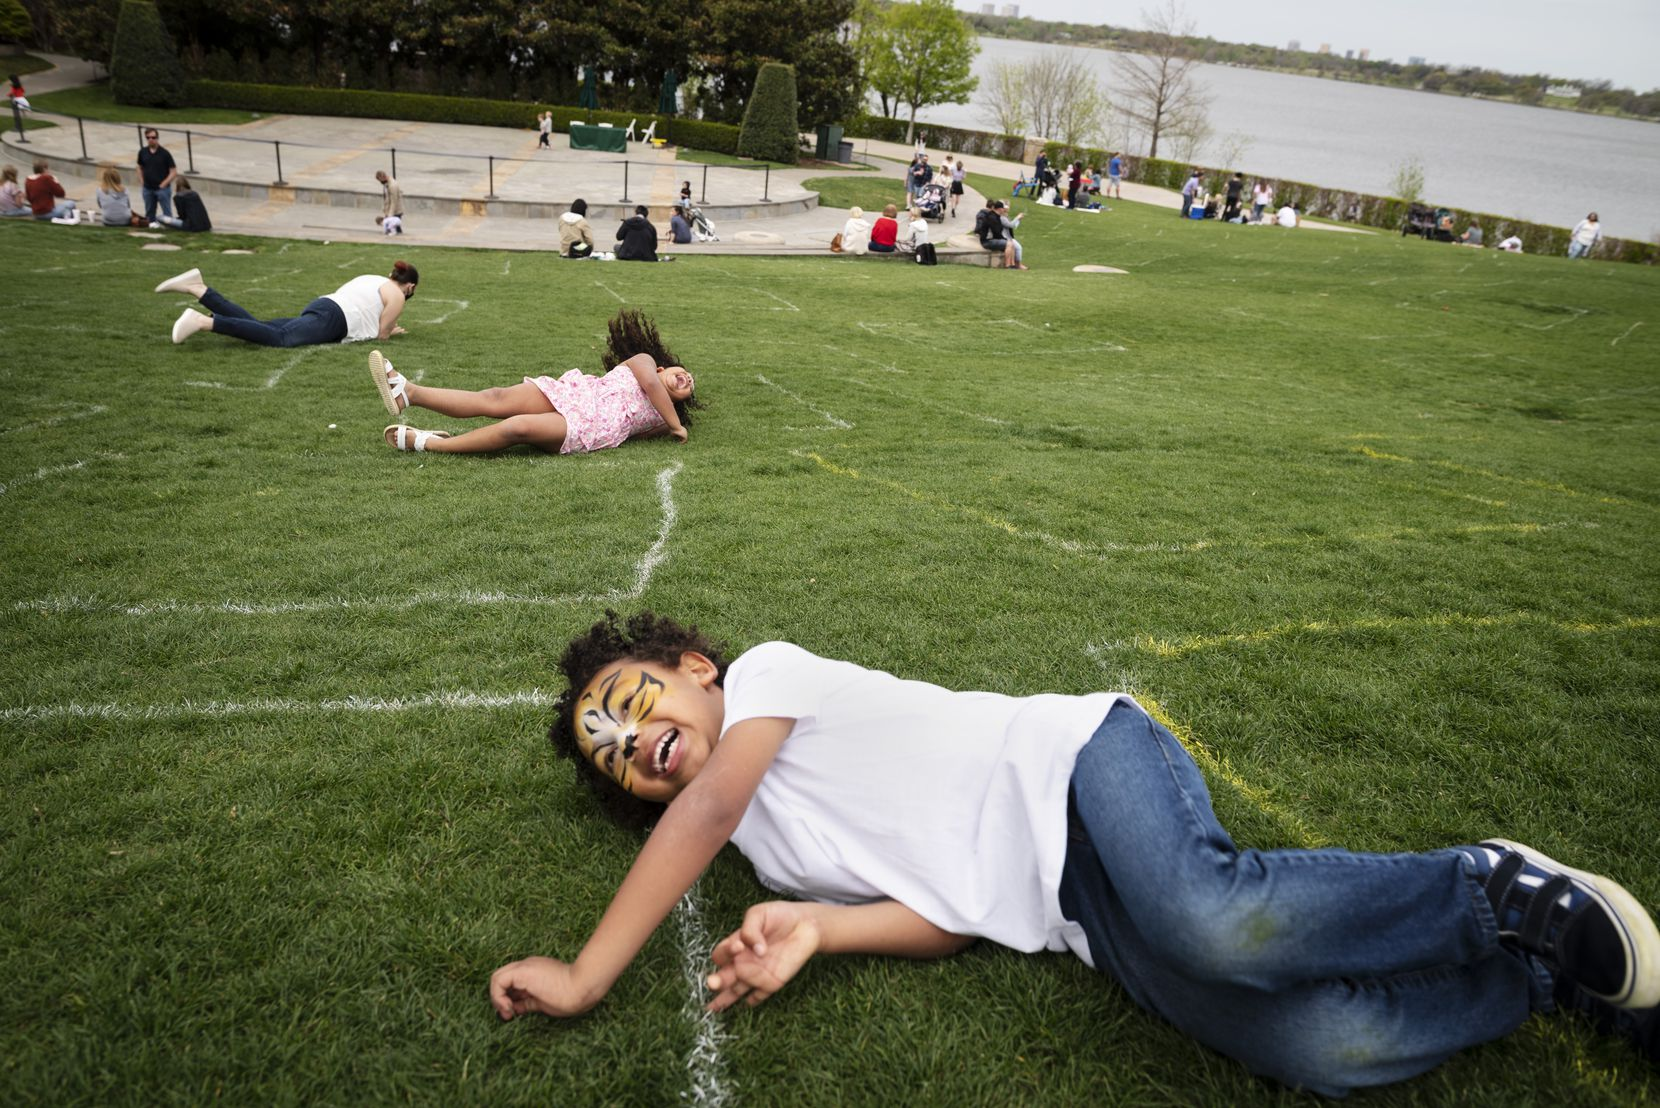 Kaniel Williams, 5, of Austin, rolls down a hill with his cousin Isadora Peña, 6, and mother Danielle Peña, as the families visited the Dallas Arboretum for Easter weekend, on Saturday, April 03, 2021 in Dallas.